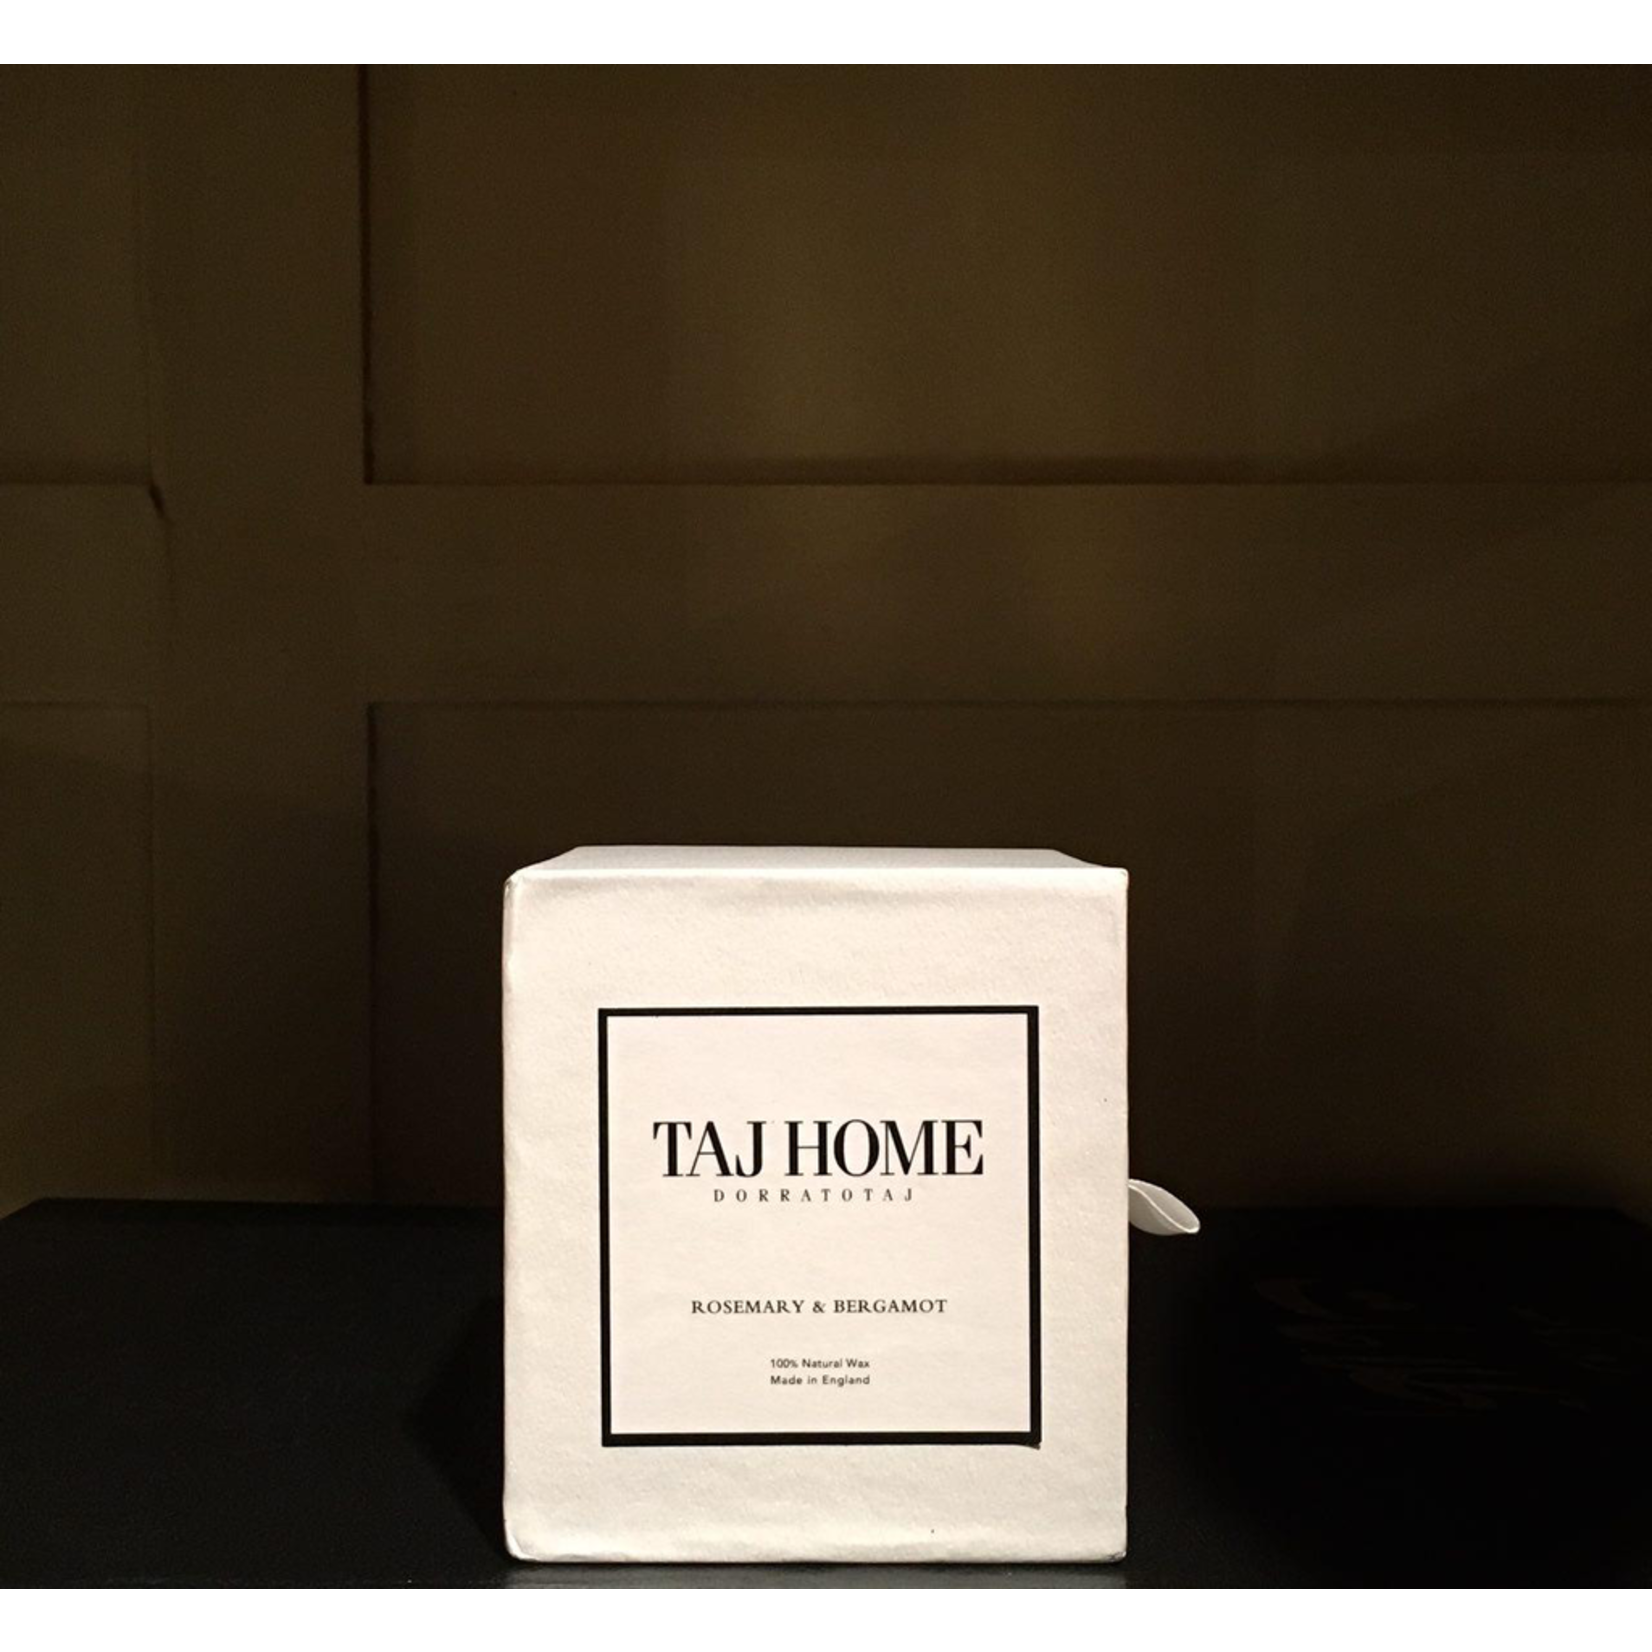 PARKS LONDON TAJHOME 30CL AGARWOOD SPICE CANDLE